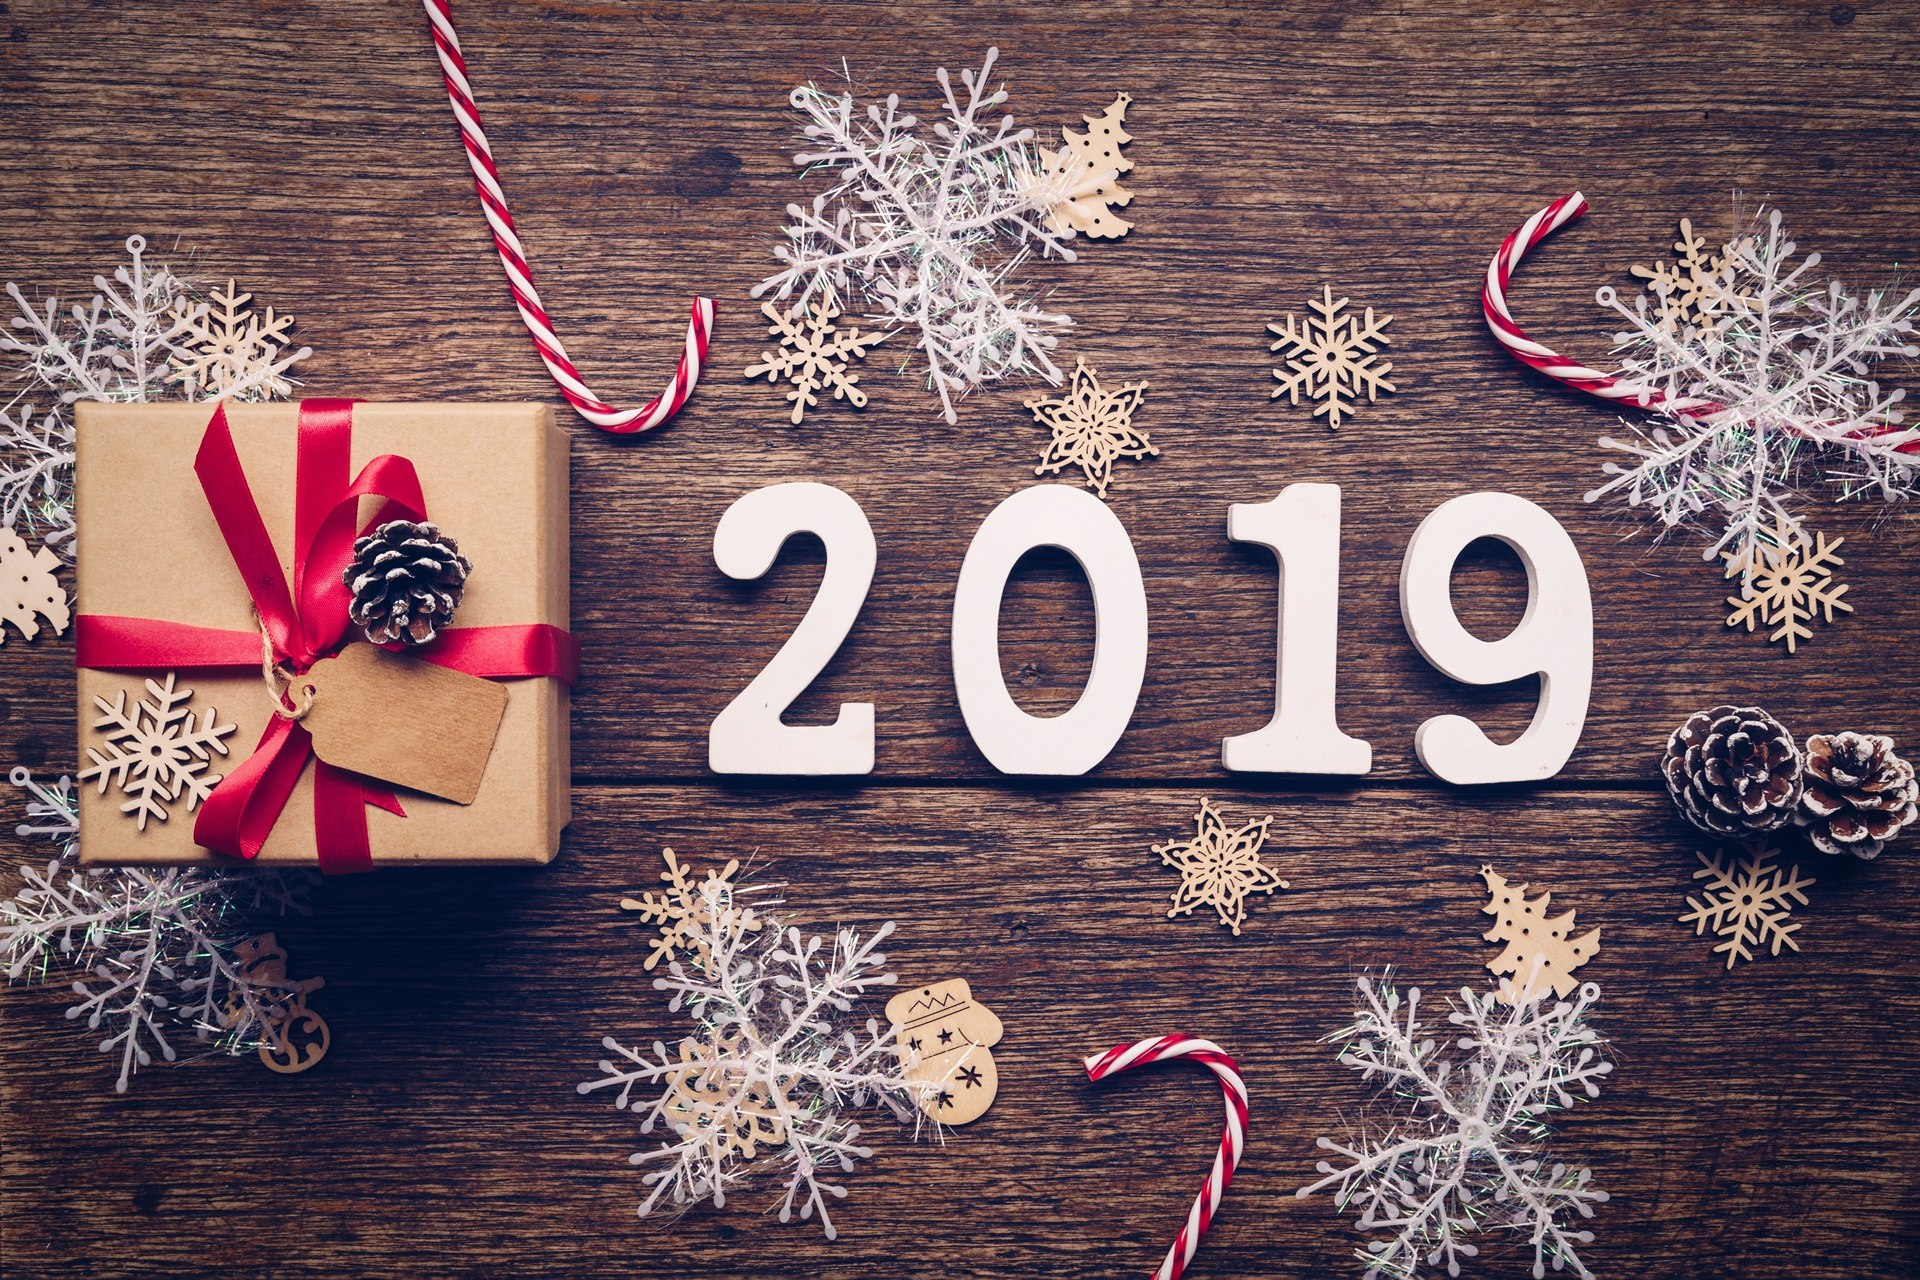 New Year 2019 Wallpapers HD Backgrounds Images Pics Photos 1920x1280